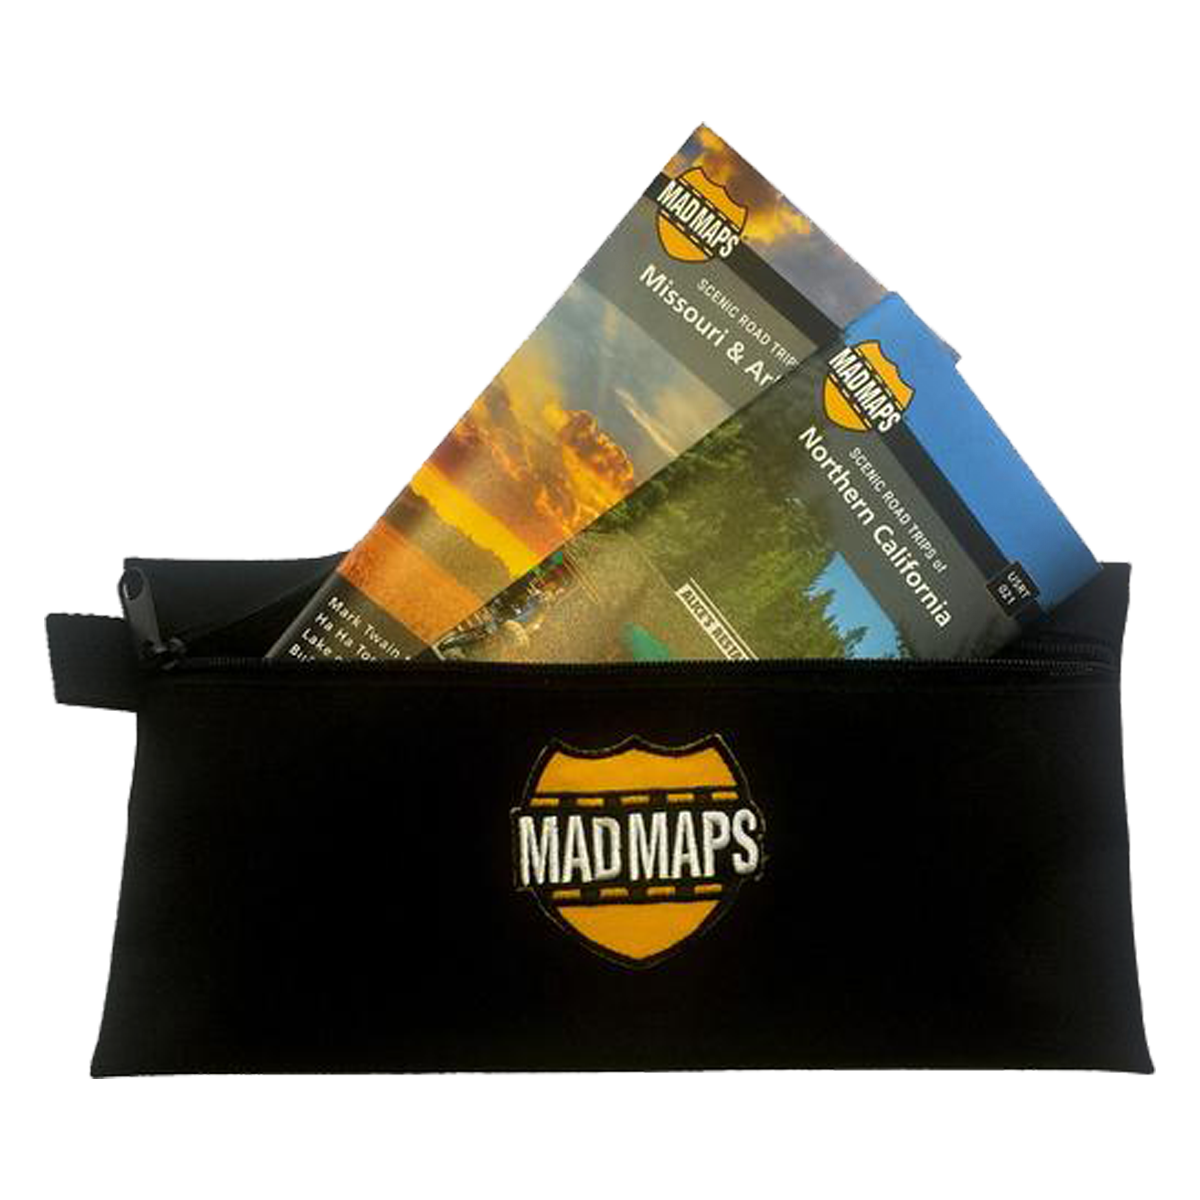 MAD Maps - Map Case - Fits Up to Eight Tall Maps - MAD Maps